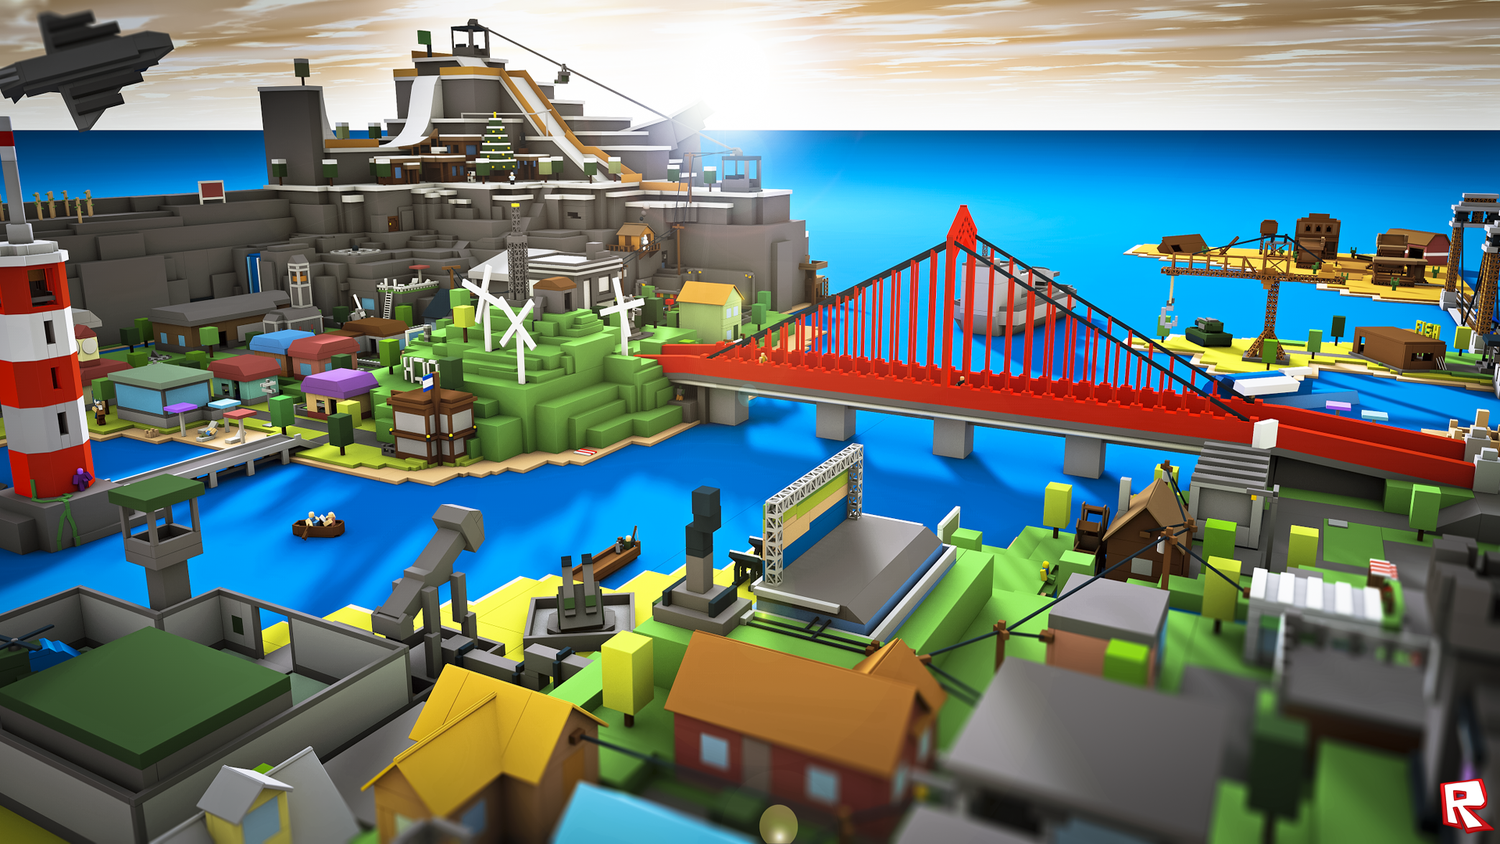 Roblox Adds Ability To Develop And Upload Games To Xbox One